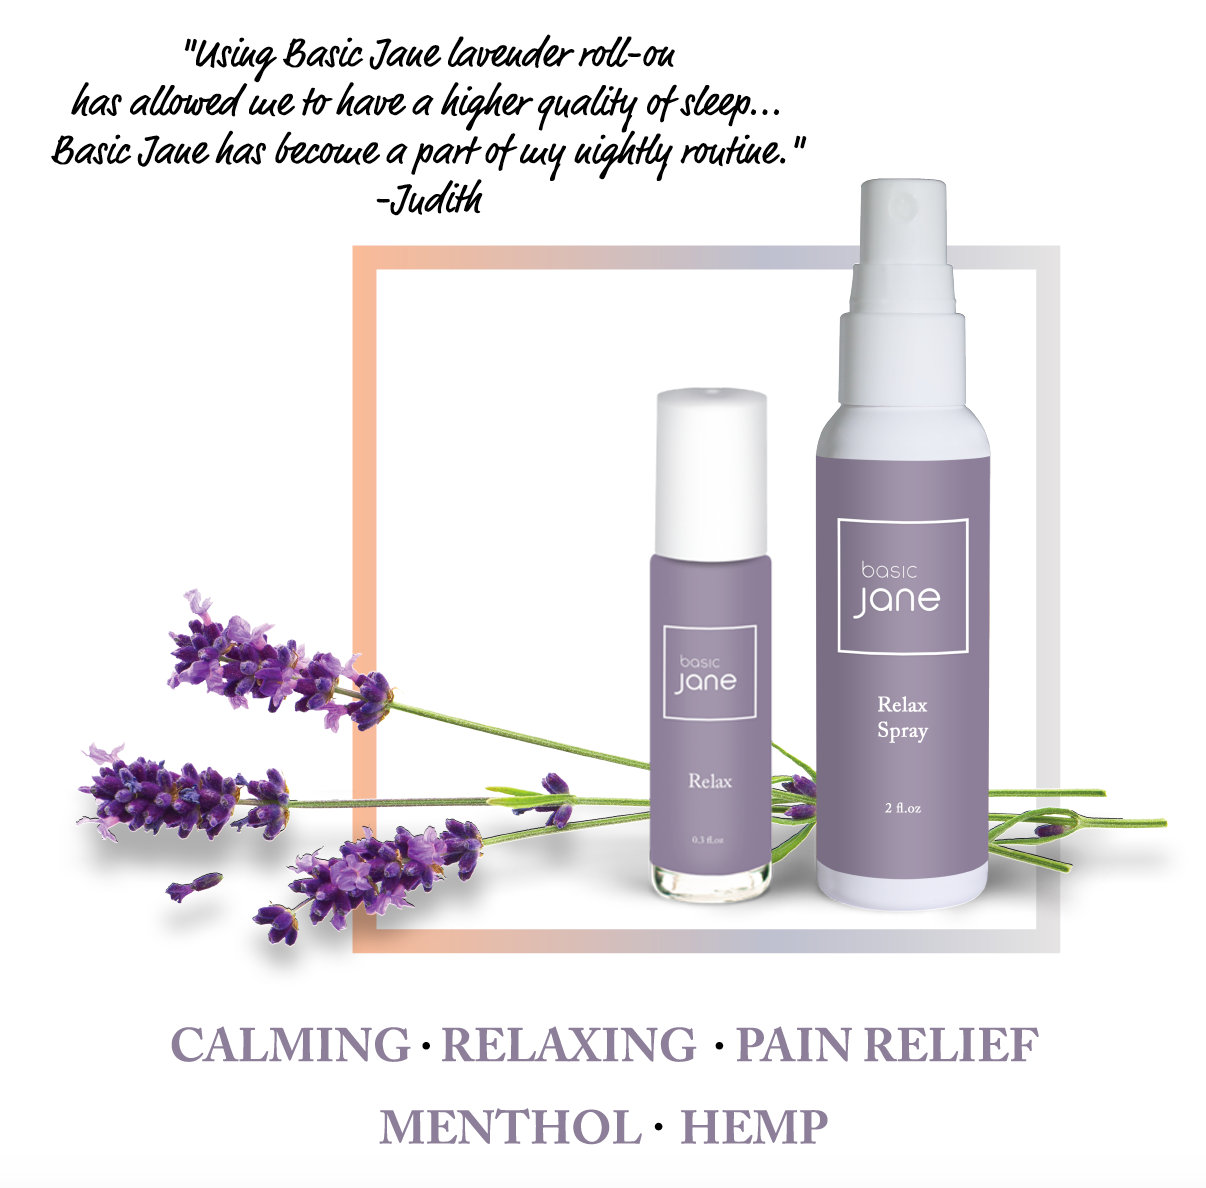 Relax Natural Topical Pain Relief Spray with CBD from Hemp and Menthol  Perfect for Sprains, Strains, Sore Keens, Sore elbows, Tennis Elbow and other aches | Basic Jane